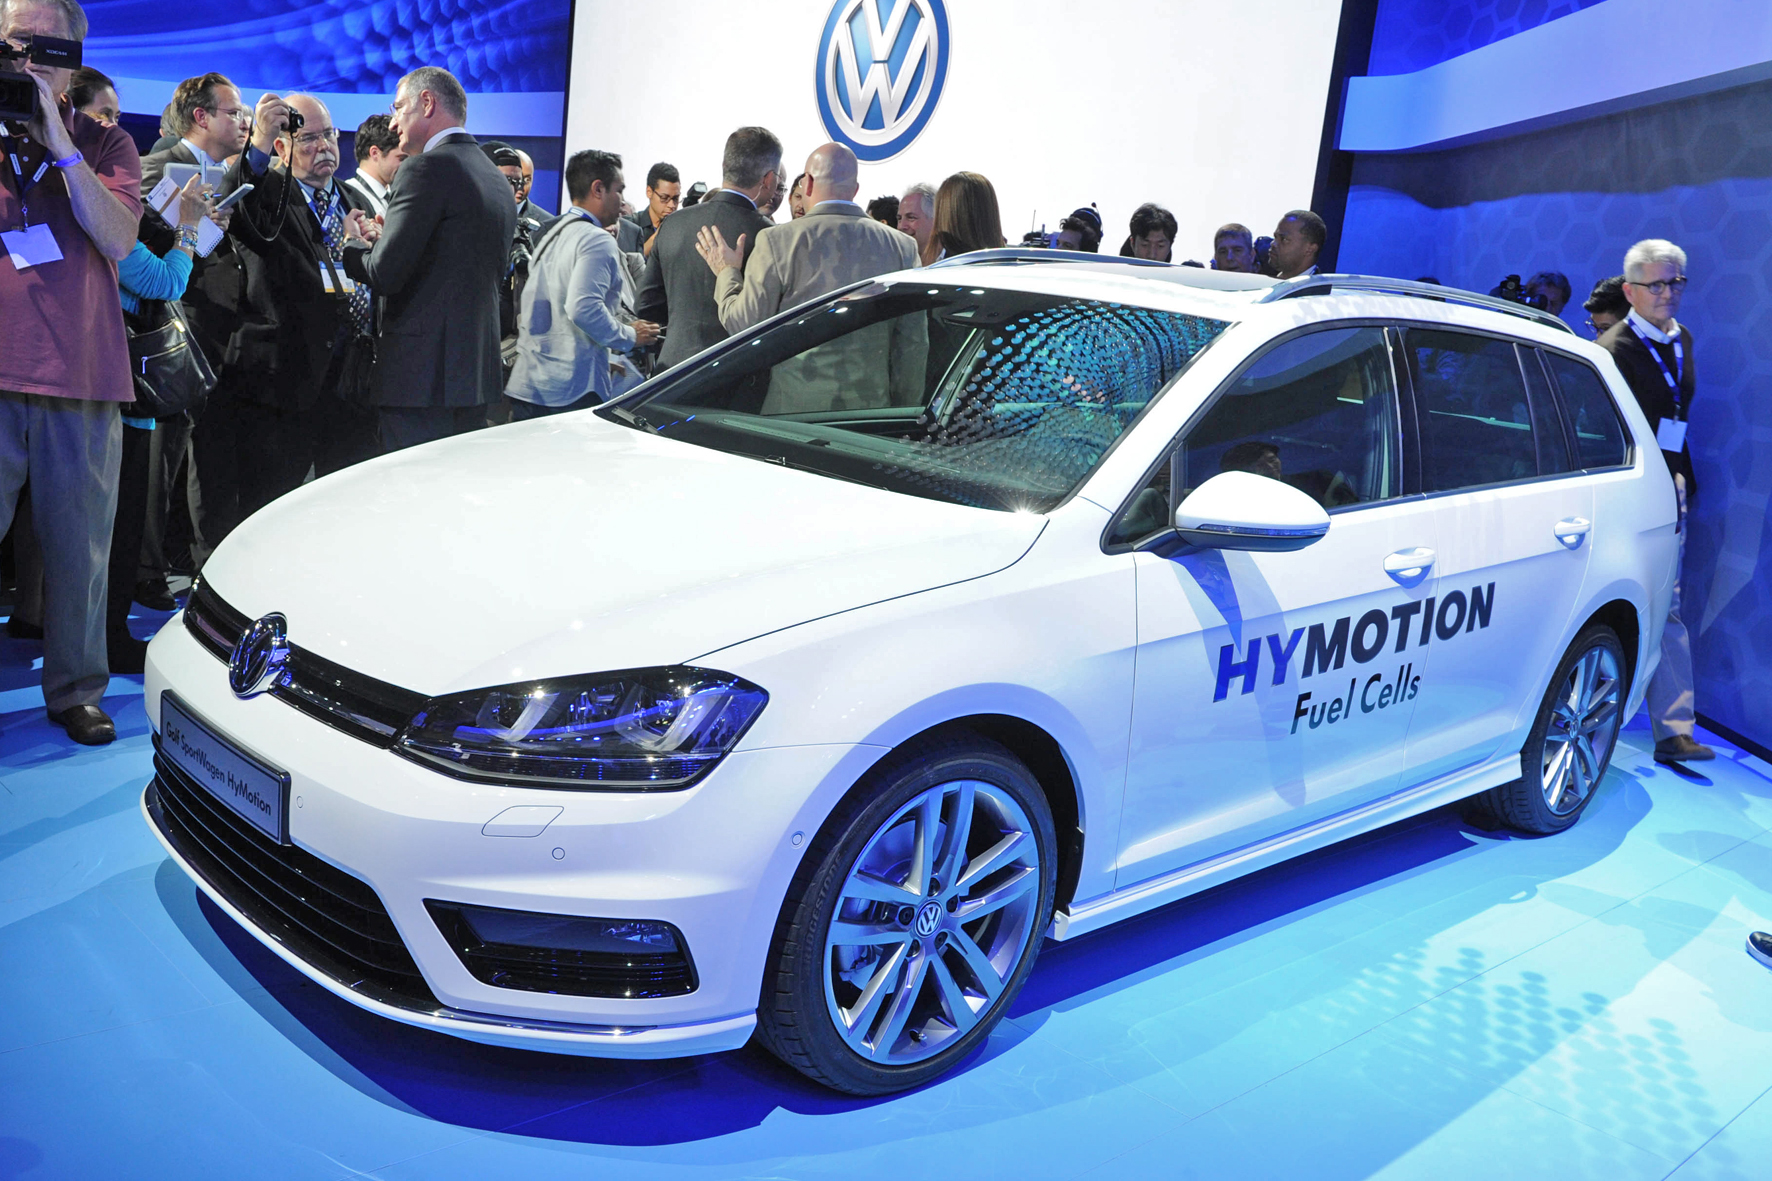 Volkswagen golf variant HyMotion